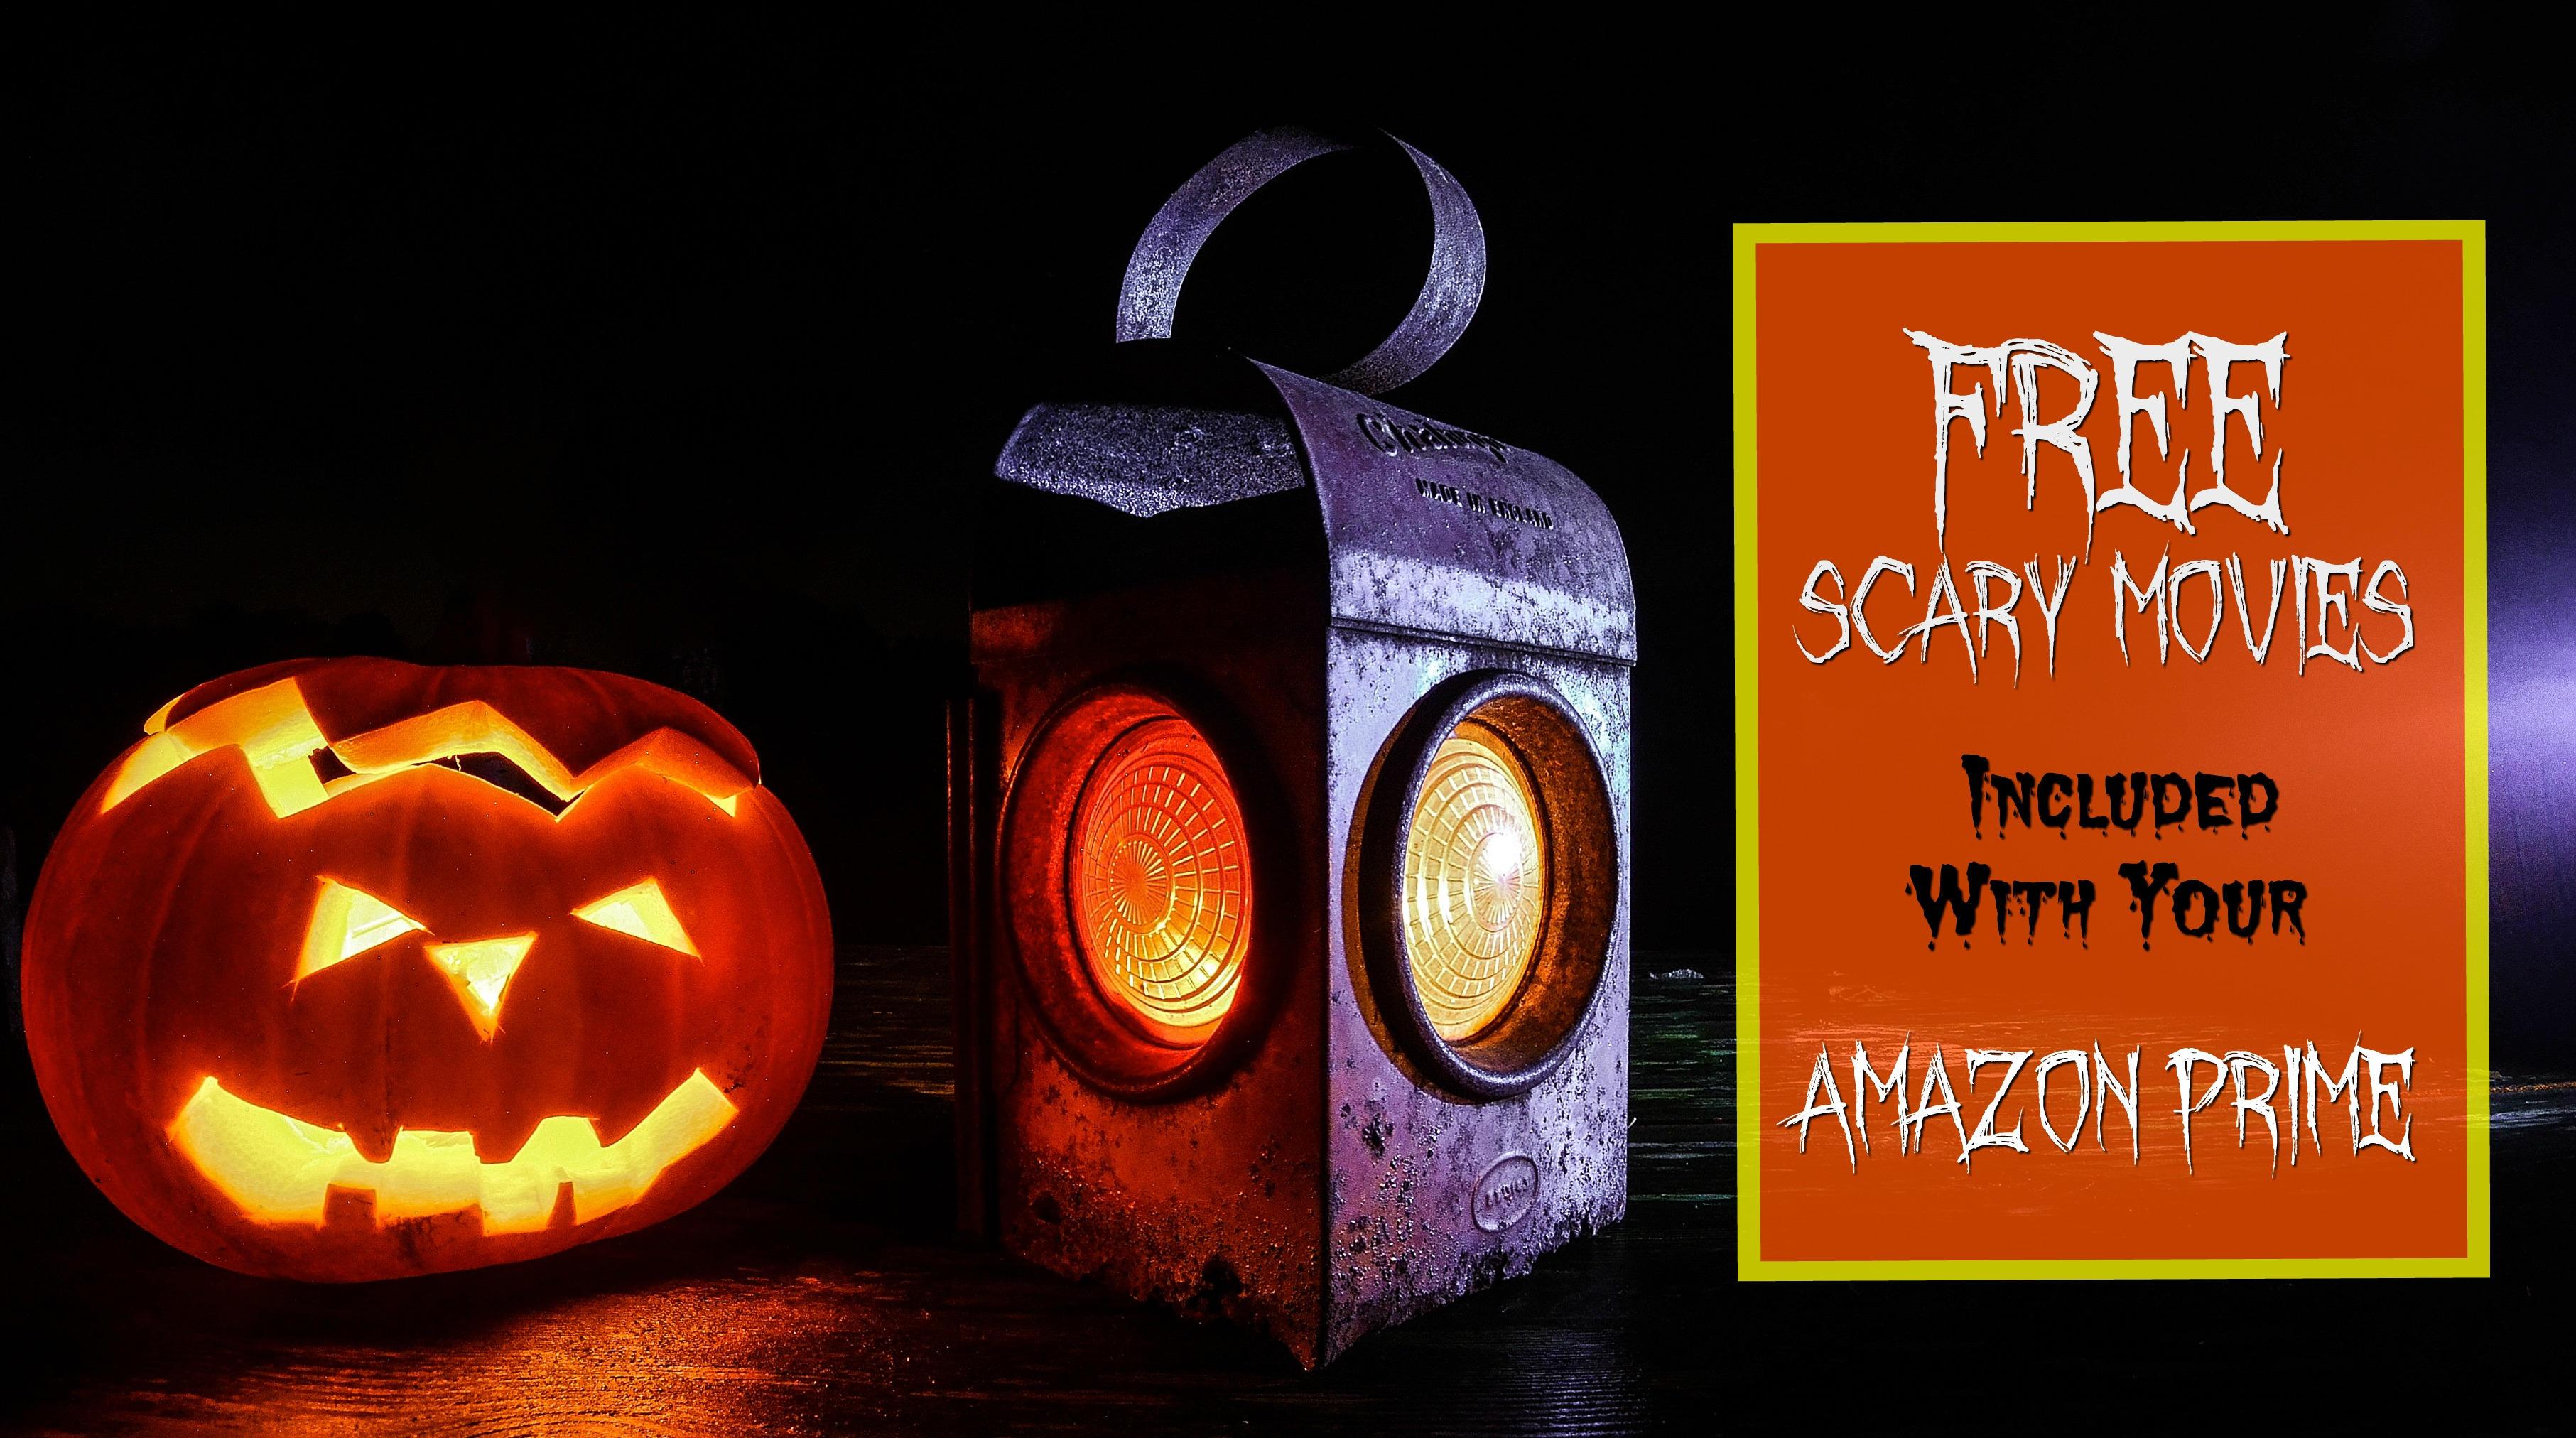 Army Wife 101 Recommends: 16 Free Scary Movies Included With Your Amazon Prime